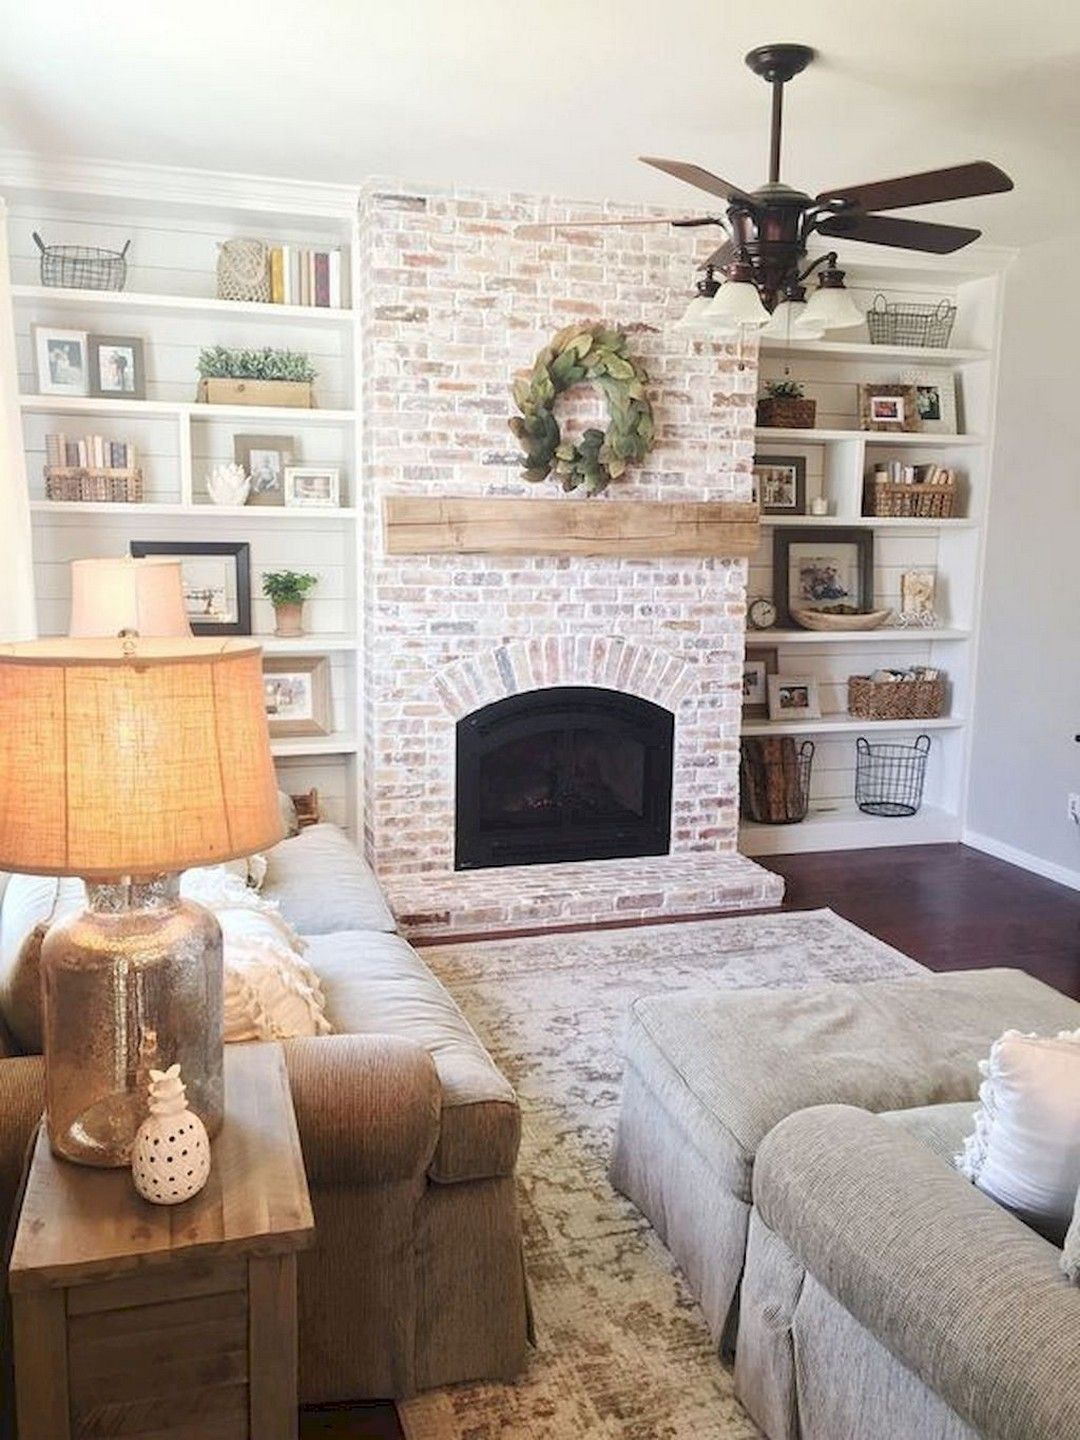 35 Farmhouse Decor With a sign above the fireplace #modernfarmhouselivingroom